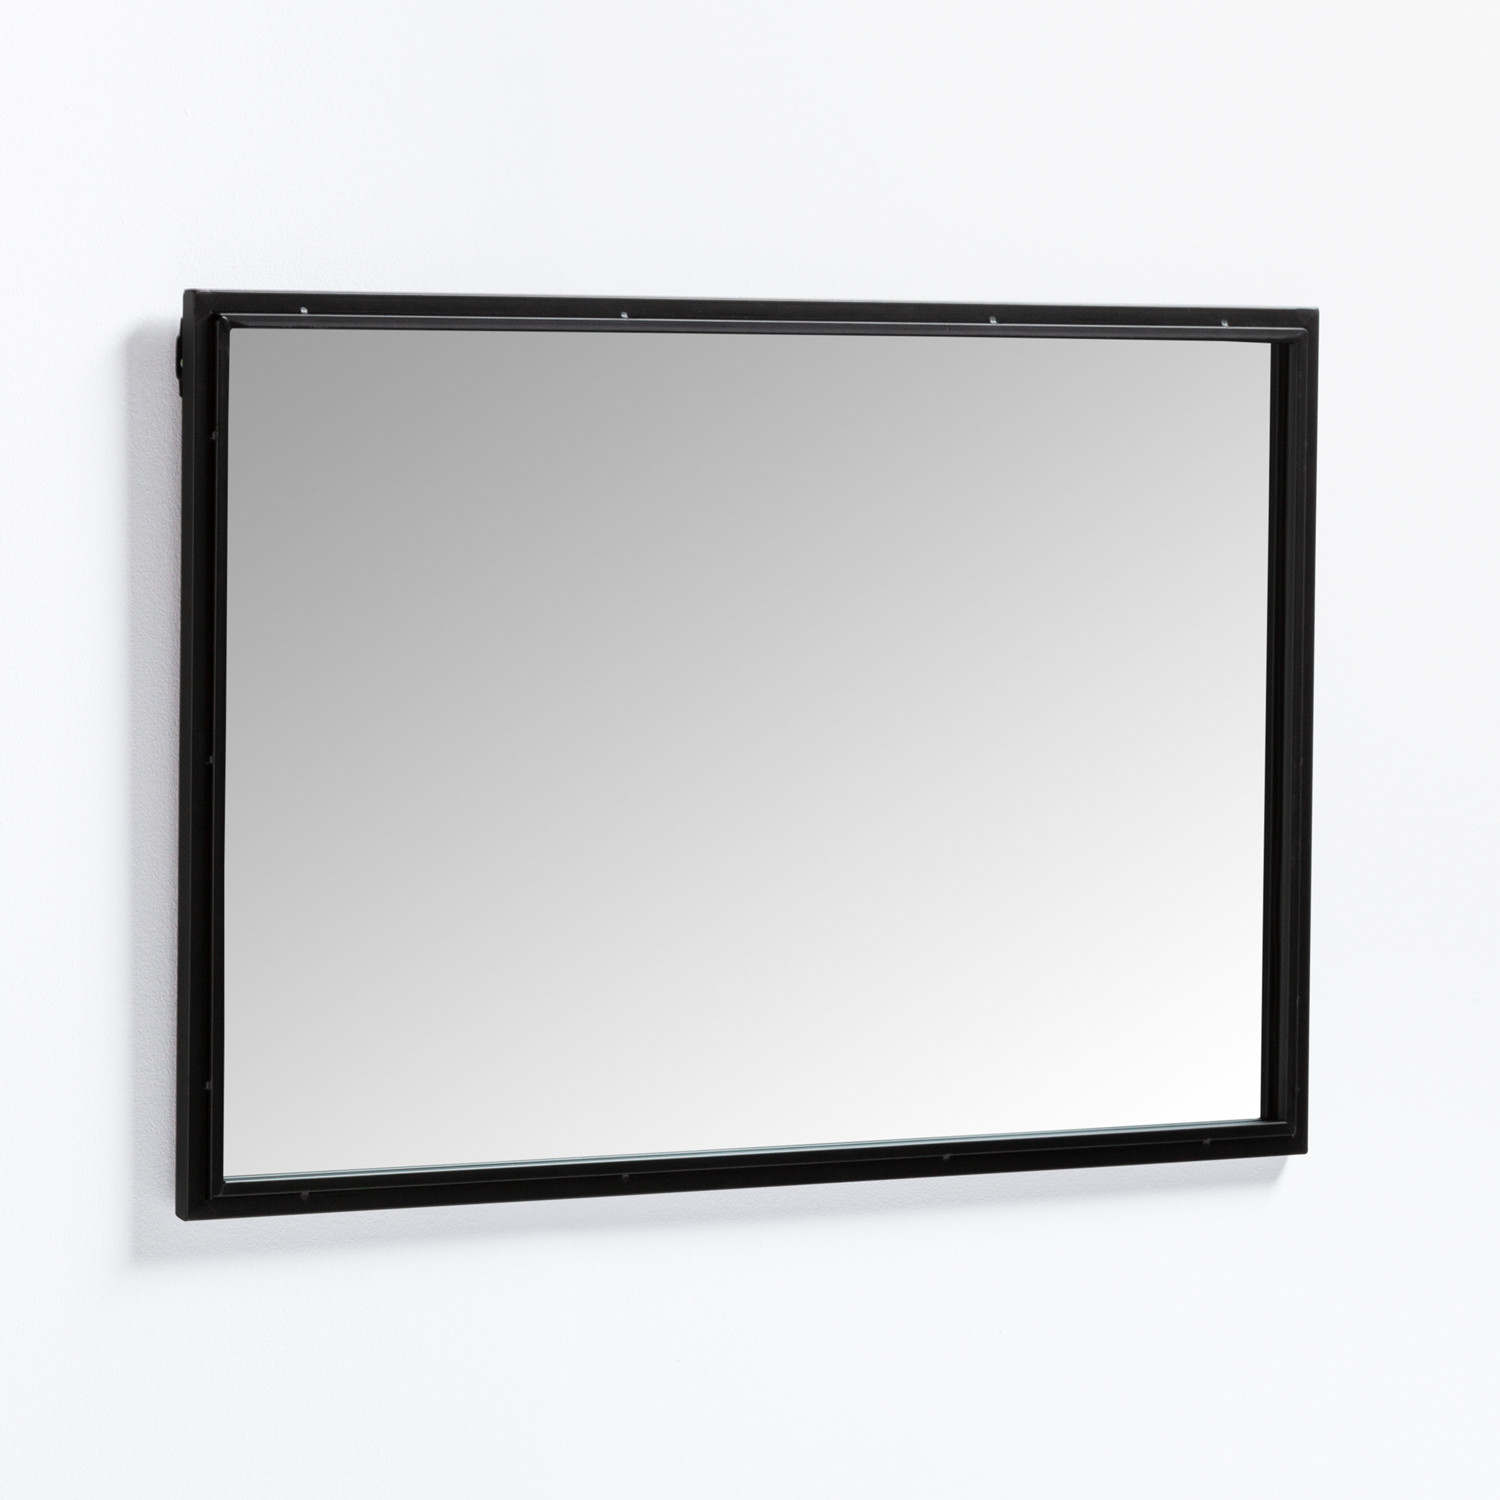 Rectangular Wall Mirror in Wood and Metal (60x95 cm) Ilme, gallery image 1